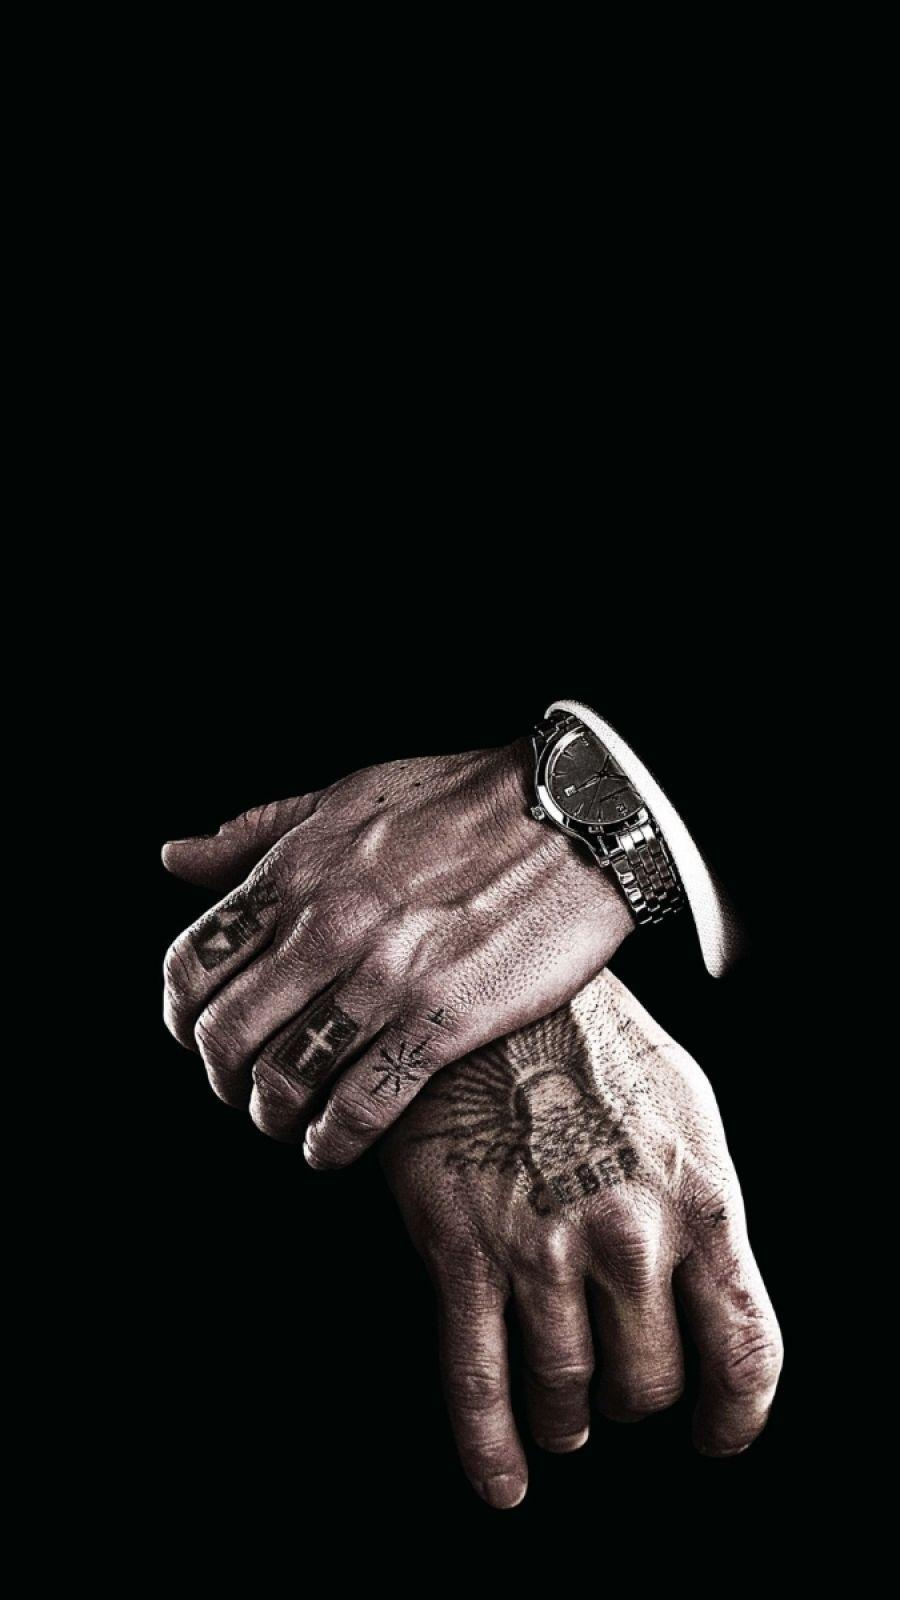 Gangster Wallpapers For Iphone Wallpaper Cave